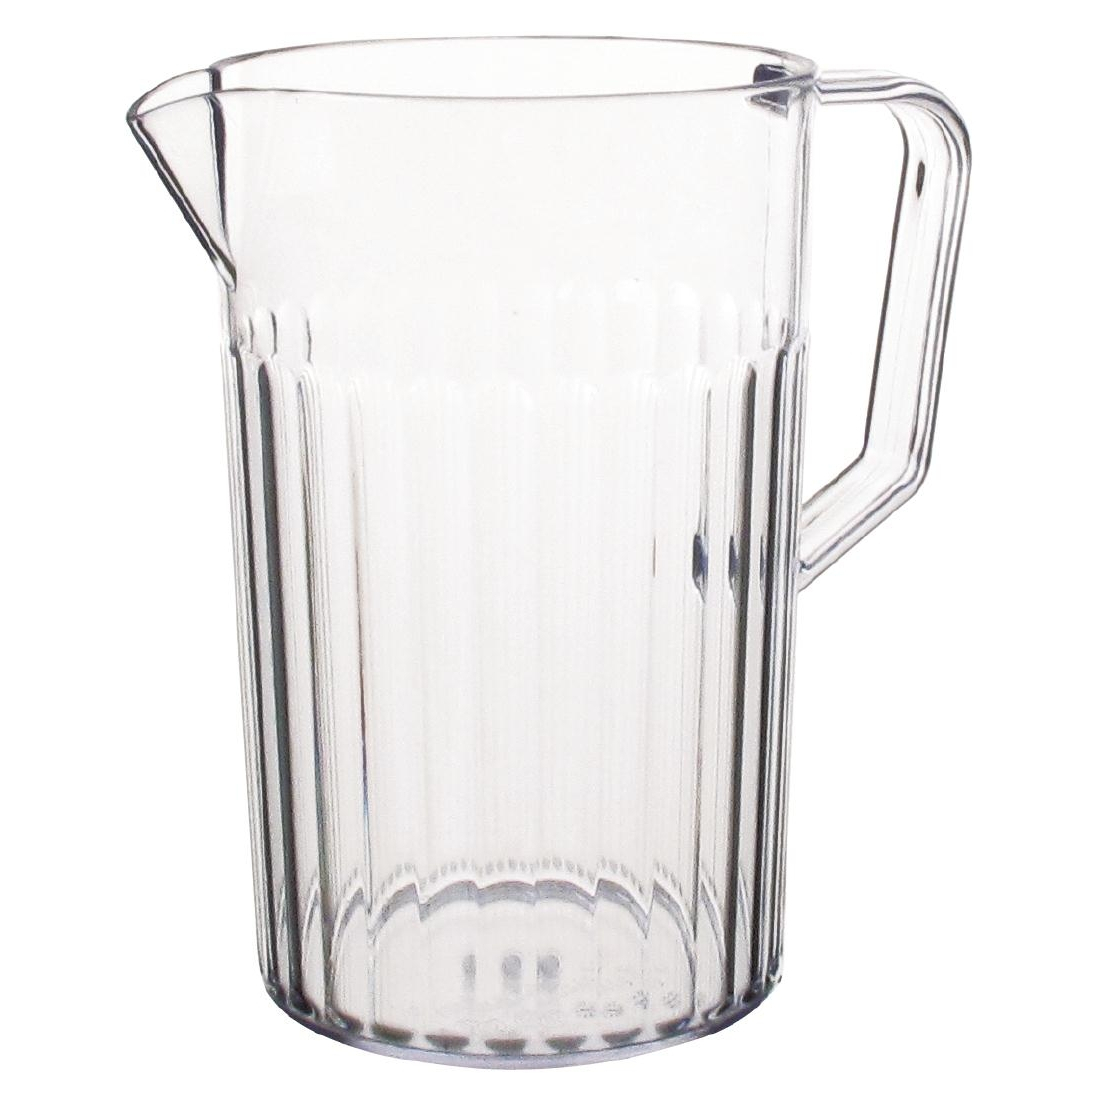 Kristallon Durable Polycarbonate Jug 0.9Ltr